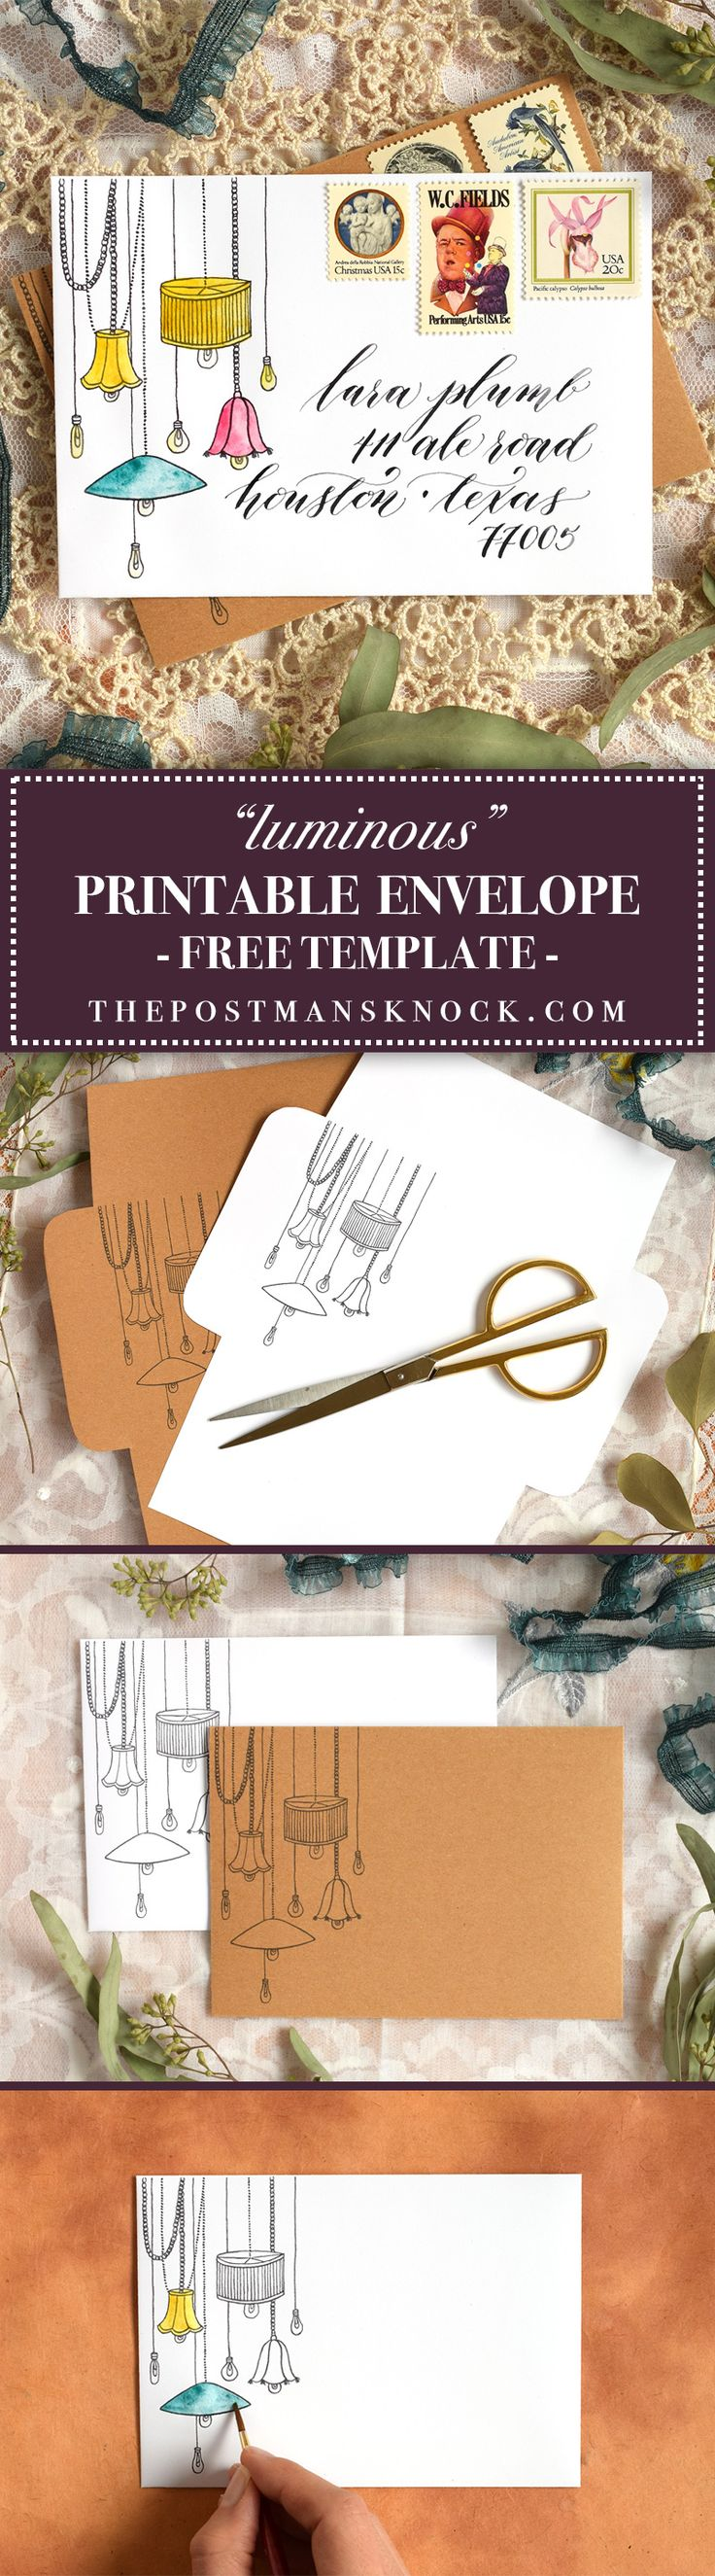 Luminous Printable Envelope Template 881 best